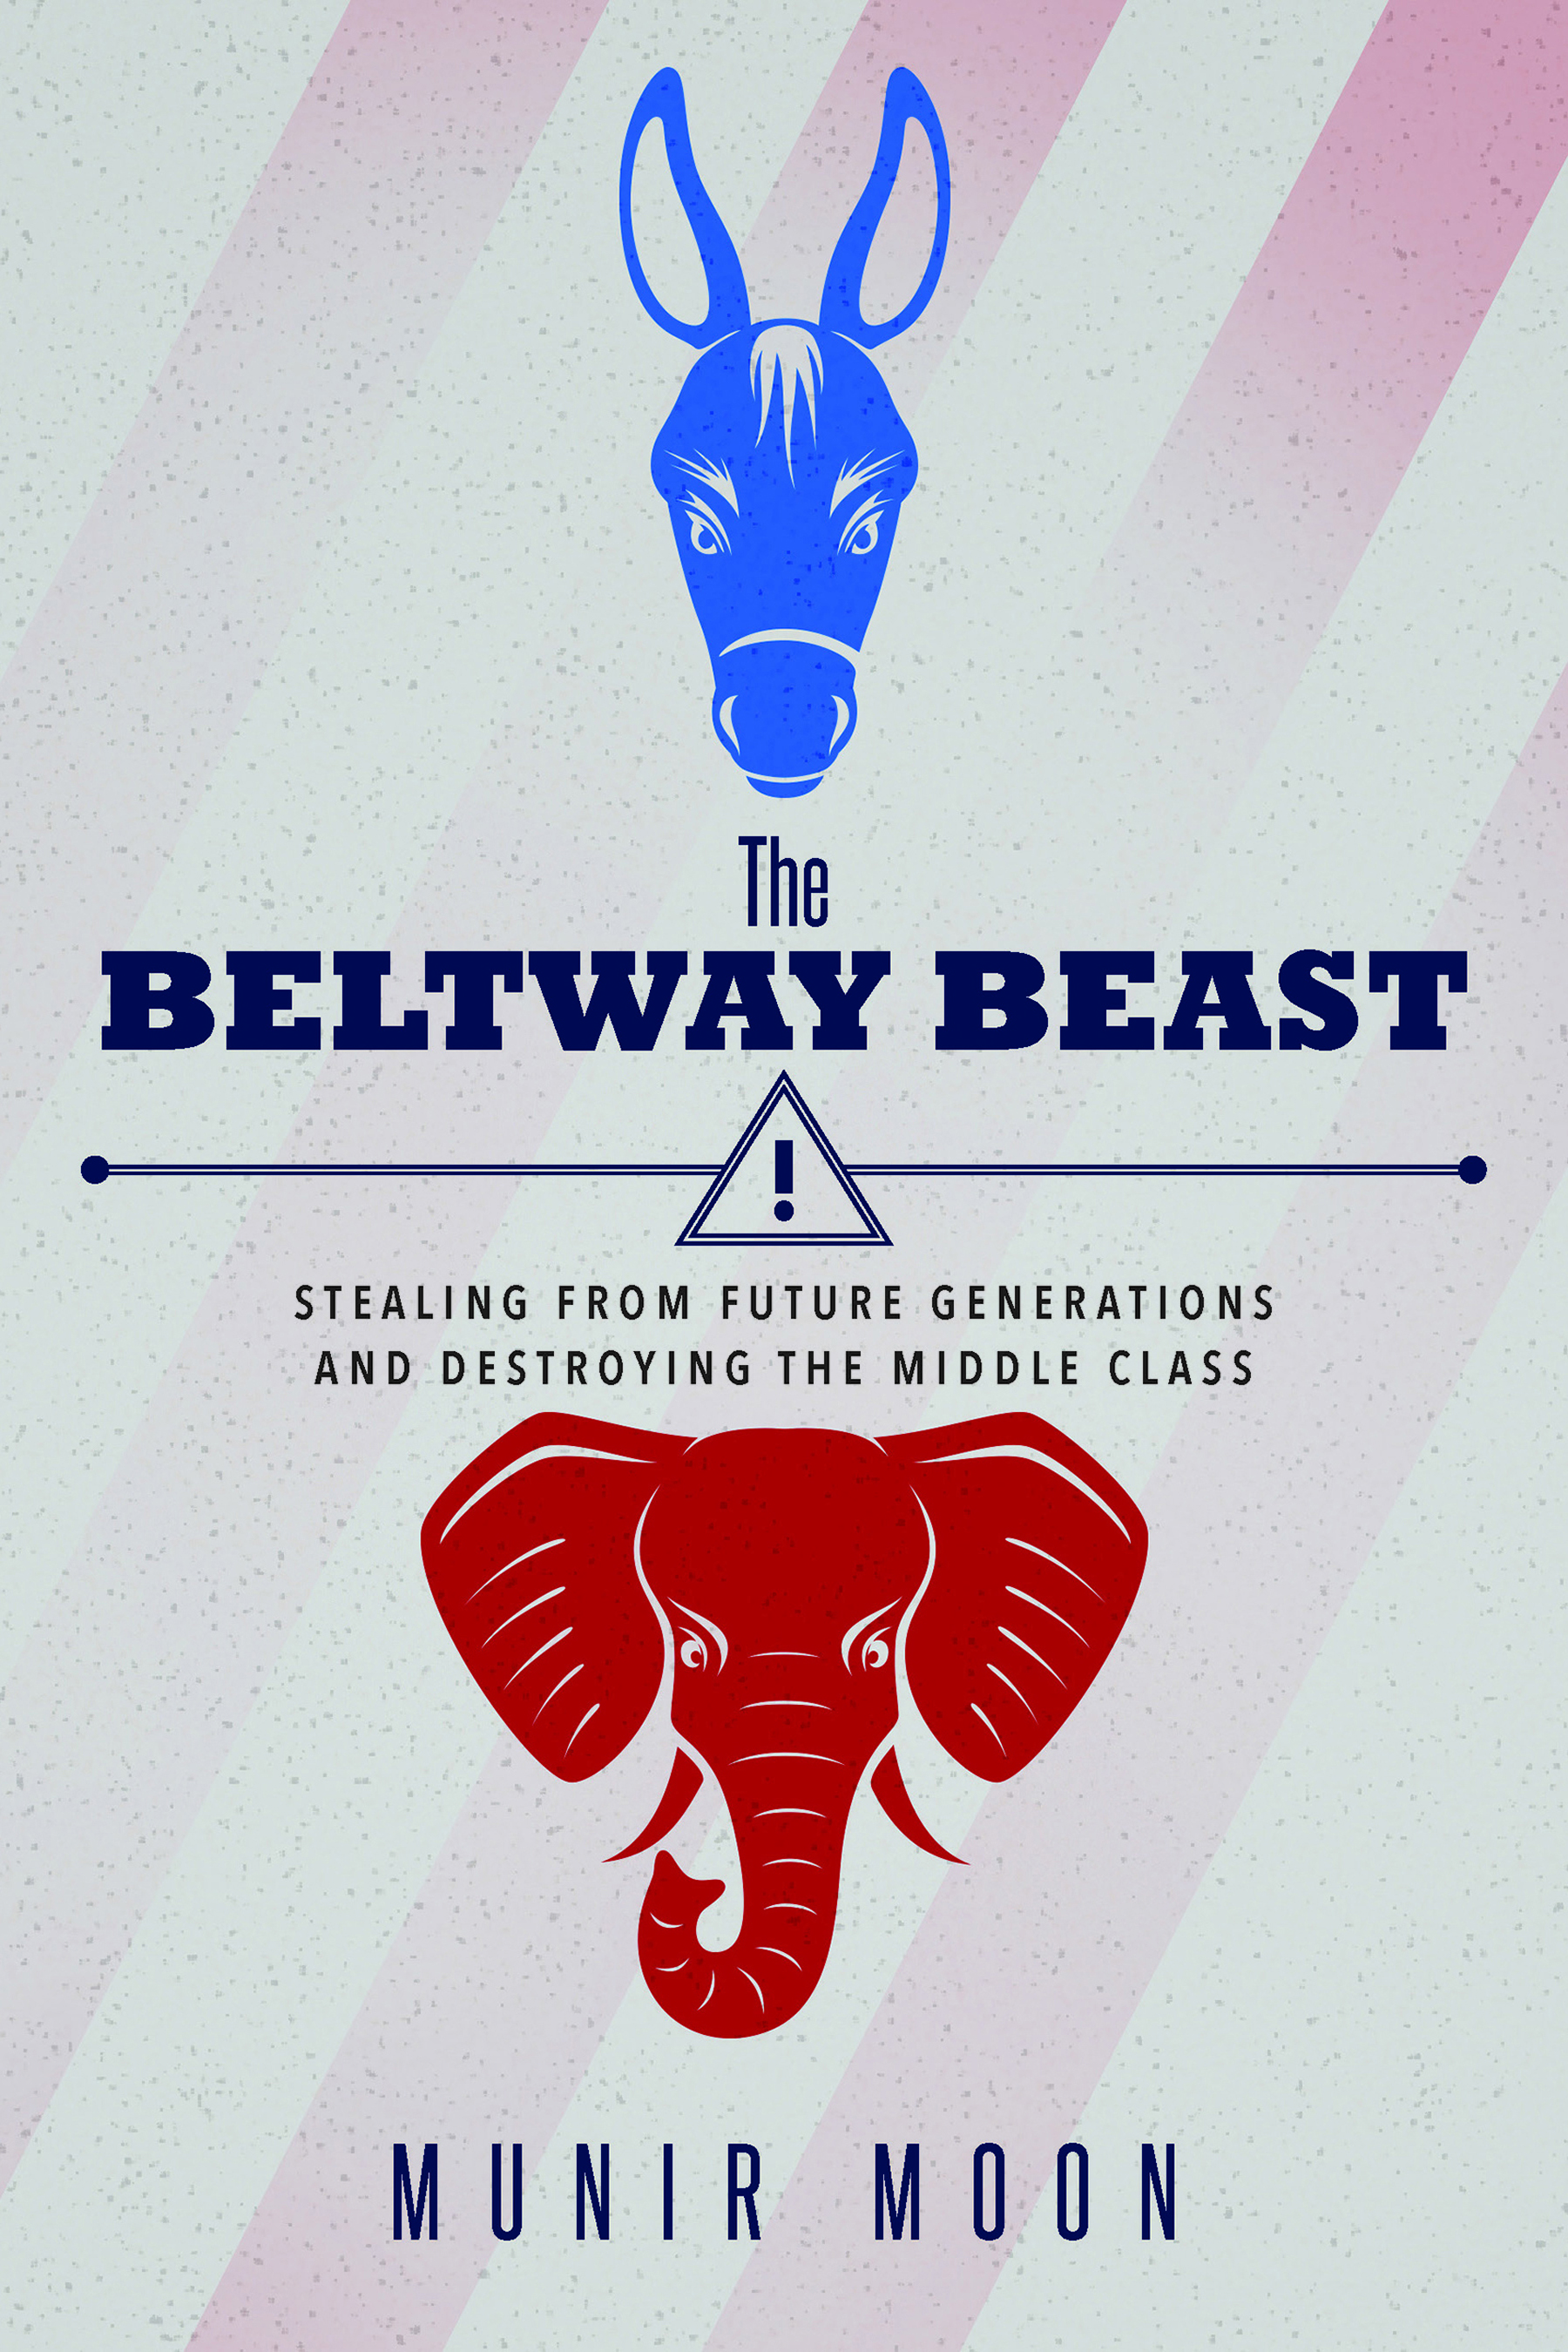 The Beltway Beast -High Resolution Front Cover - 6x9